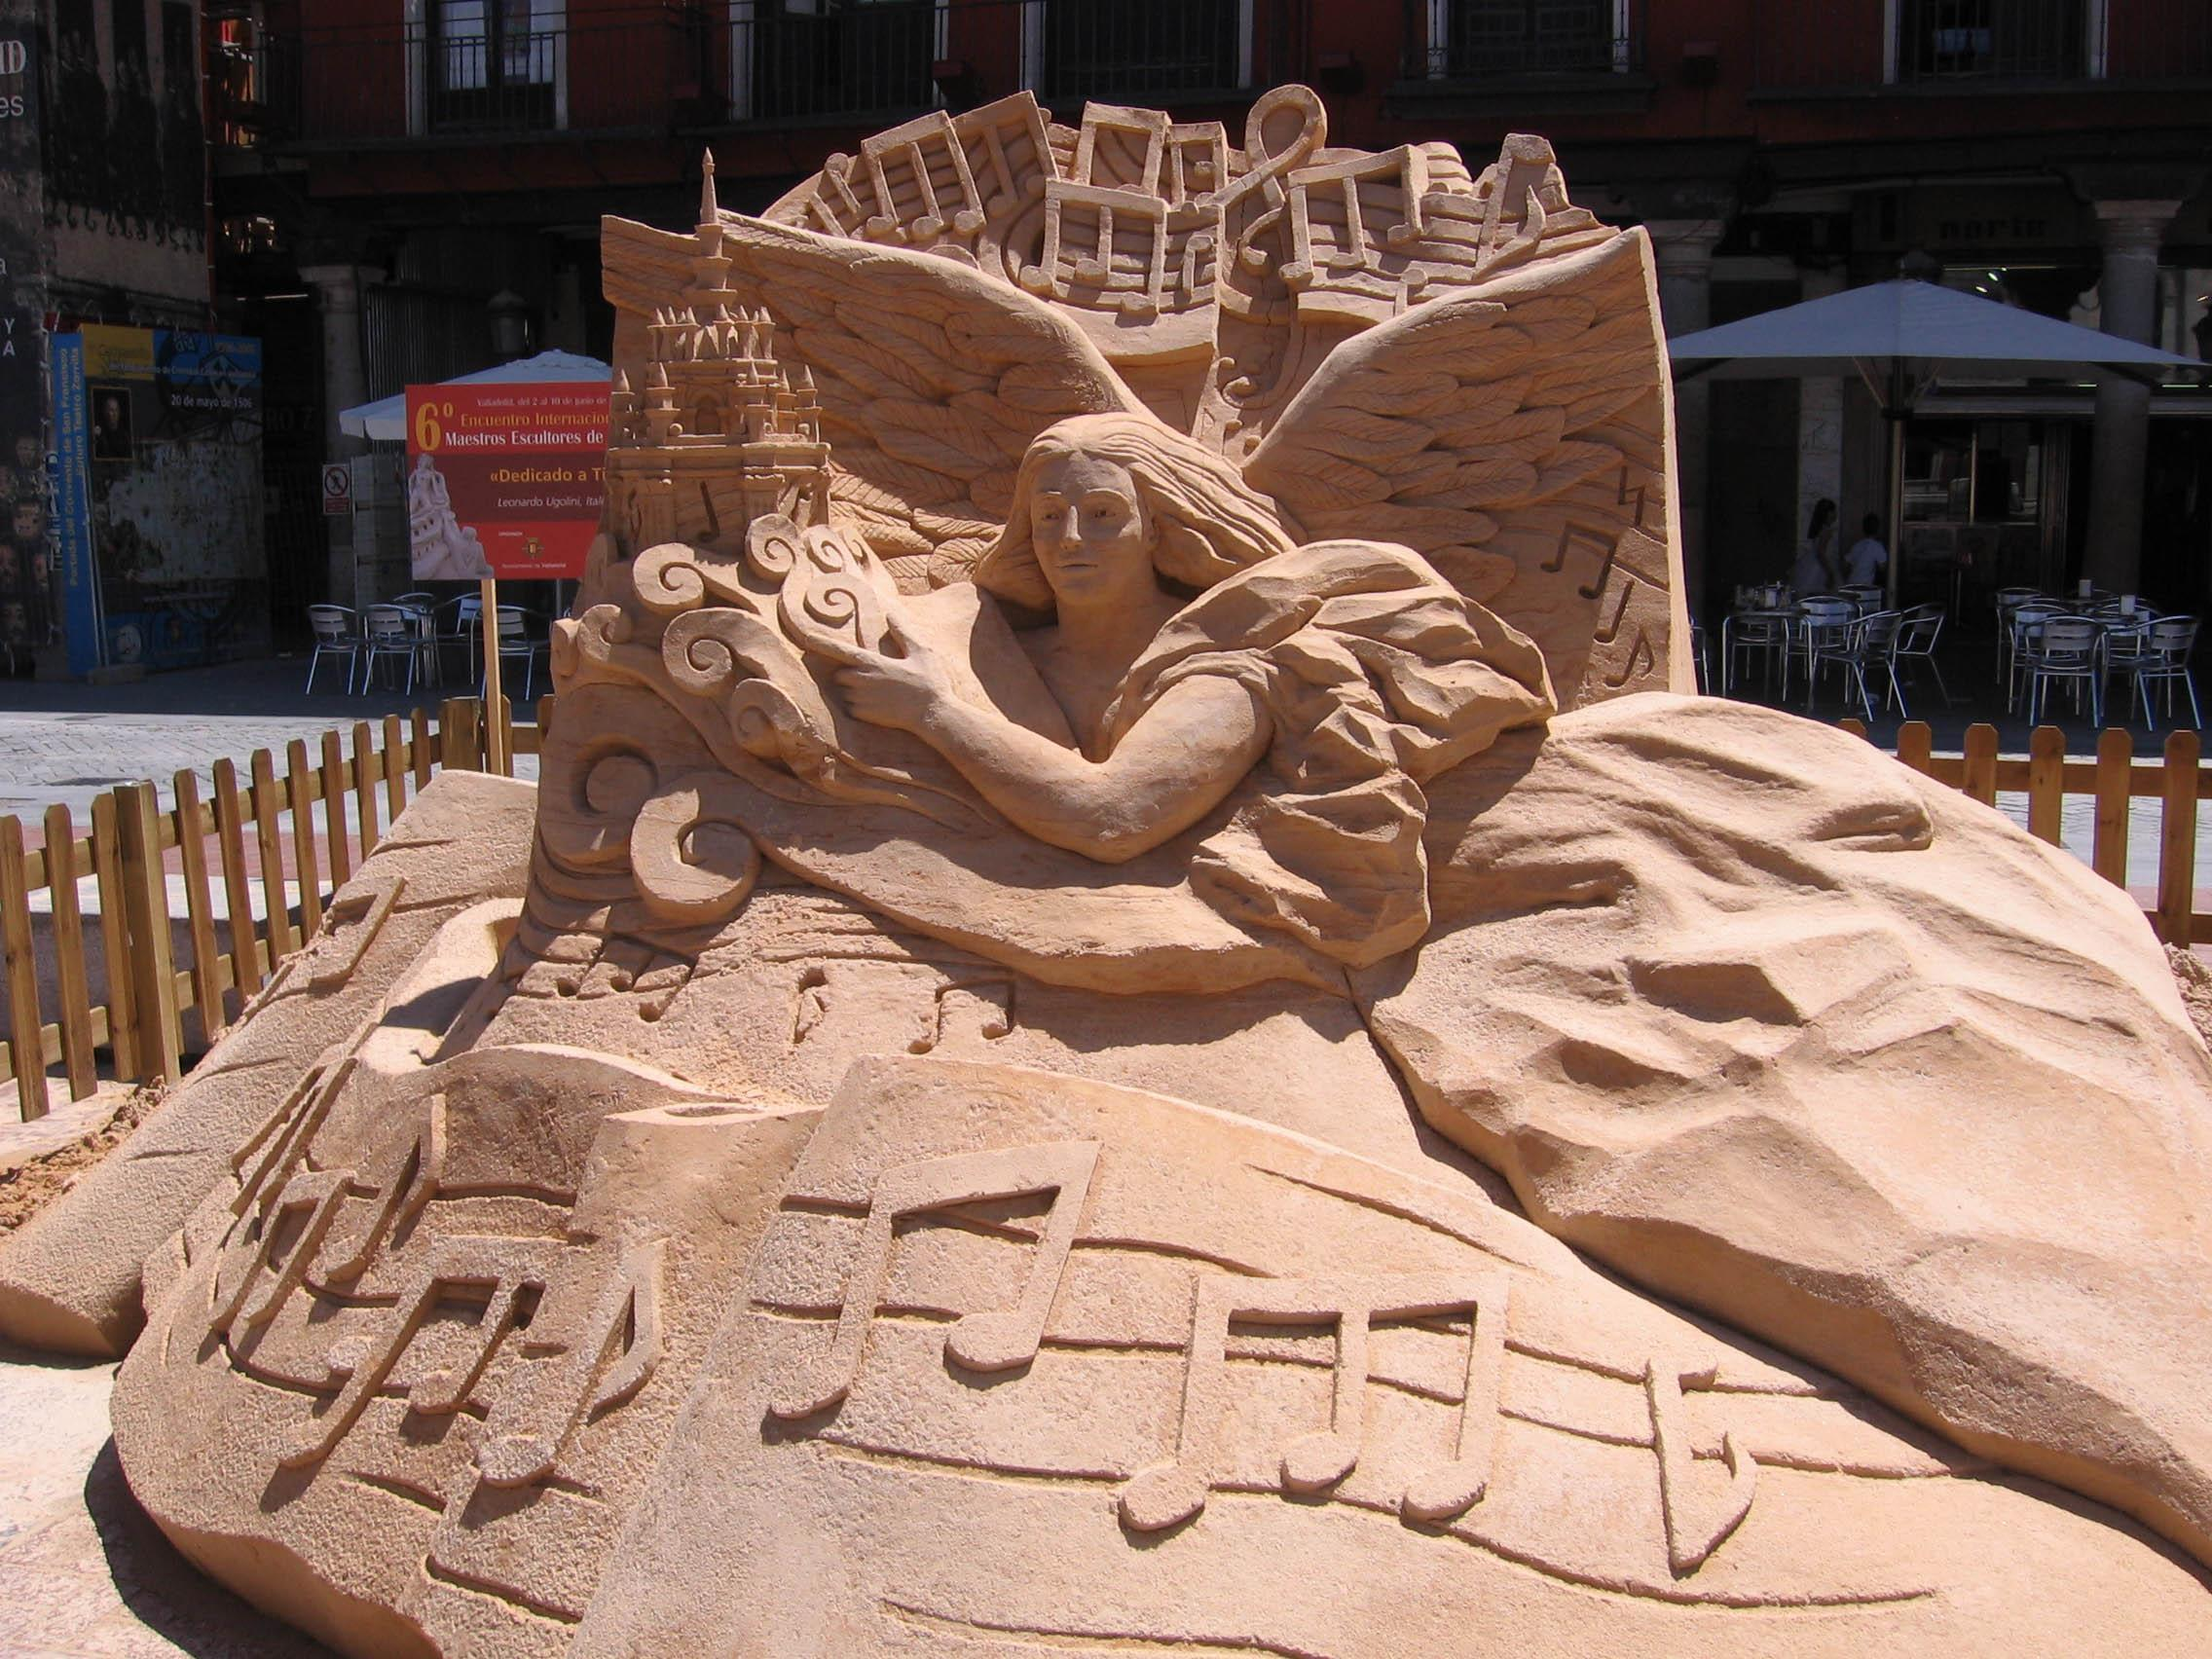 The sand sculpture winner.